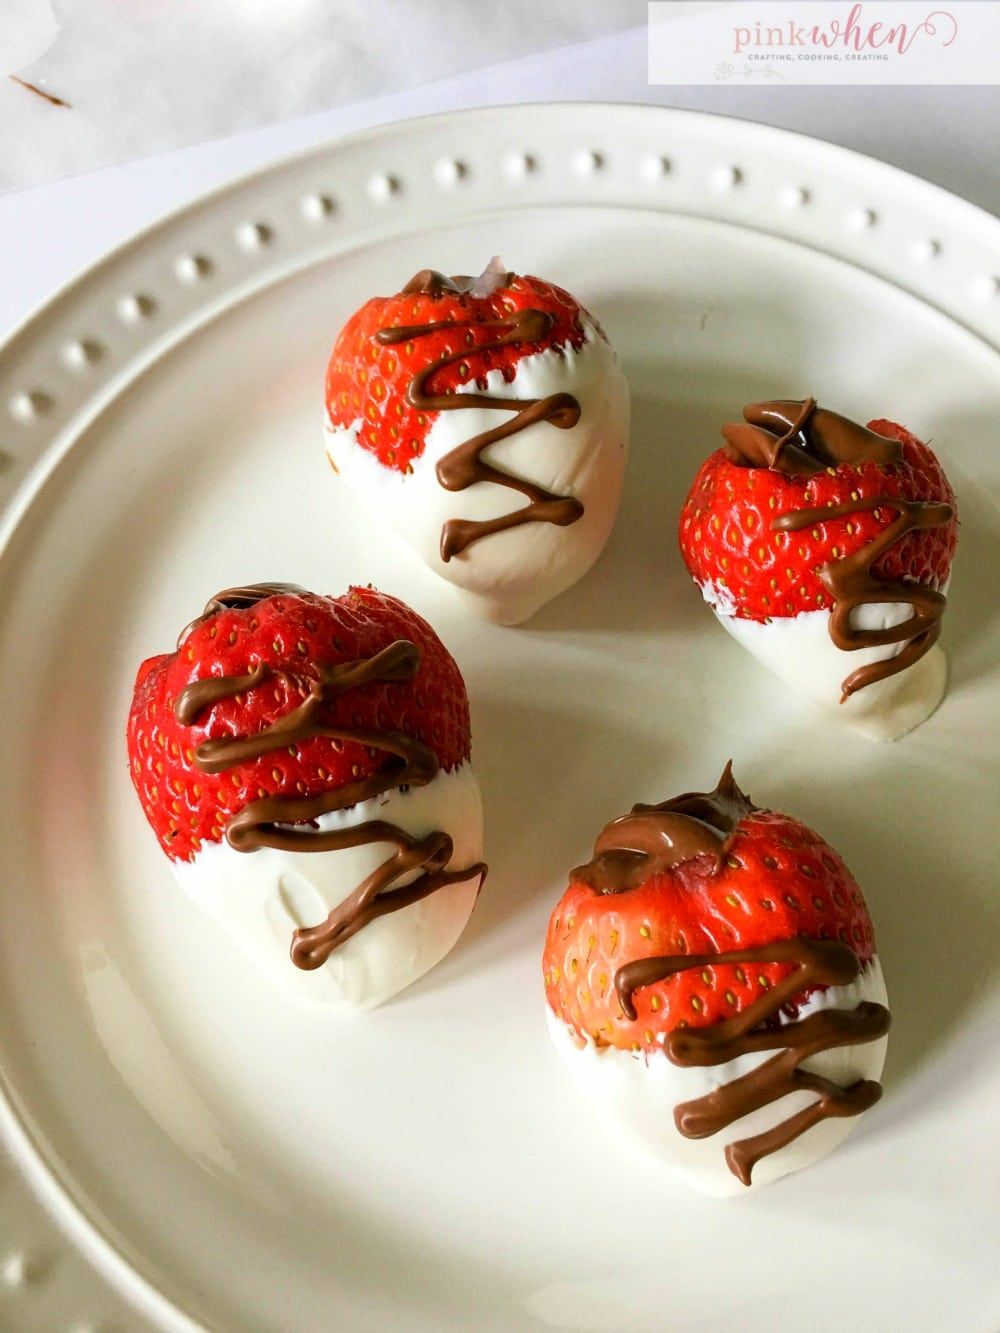 I love Nutella, and I love chocolate covered strawberries, so when you mash these two together, you get a DELICIOUS nutella stuffed chocolate covered strawberry treat.